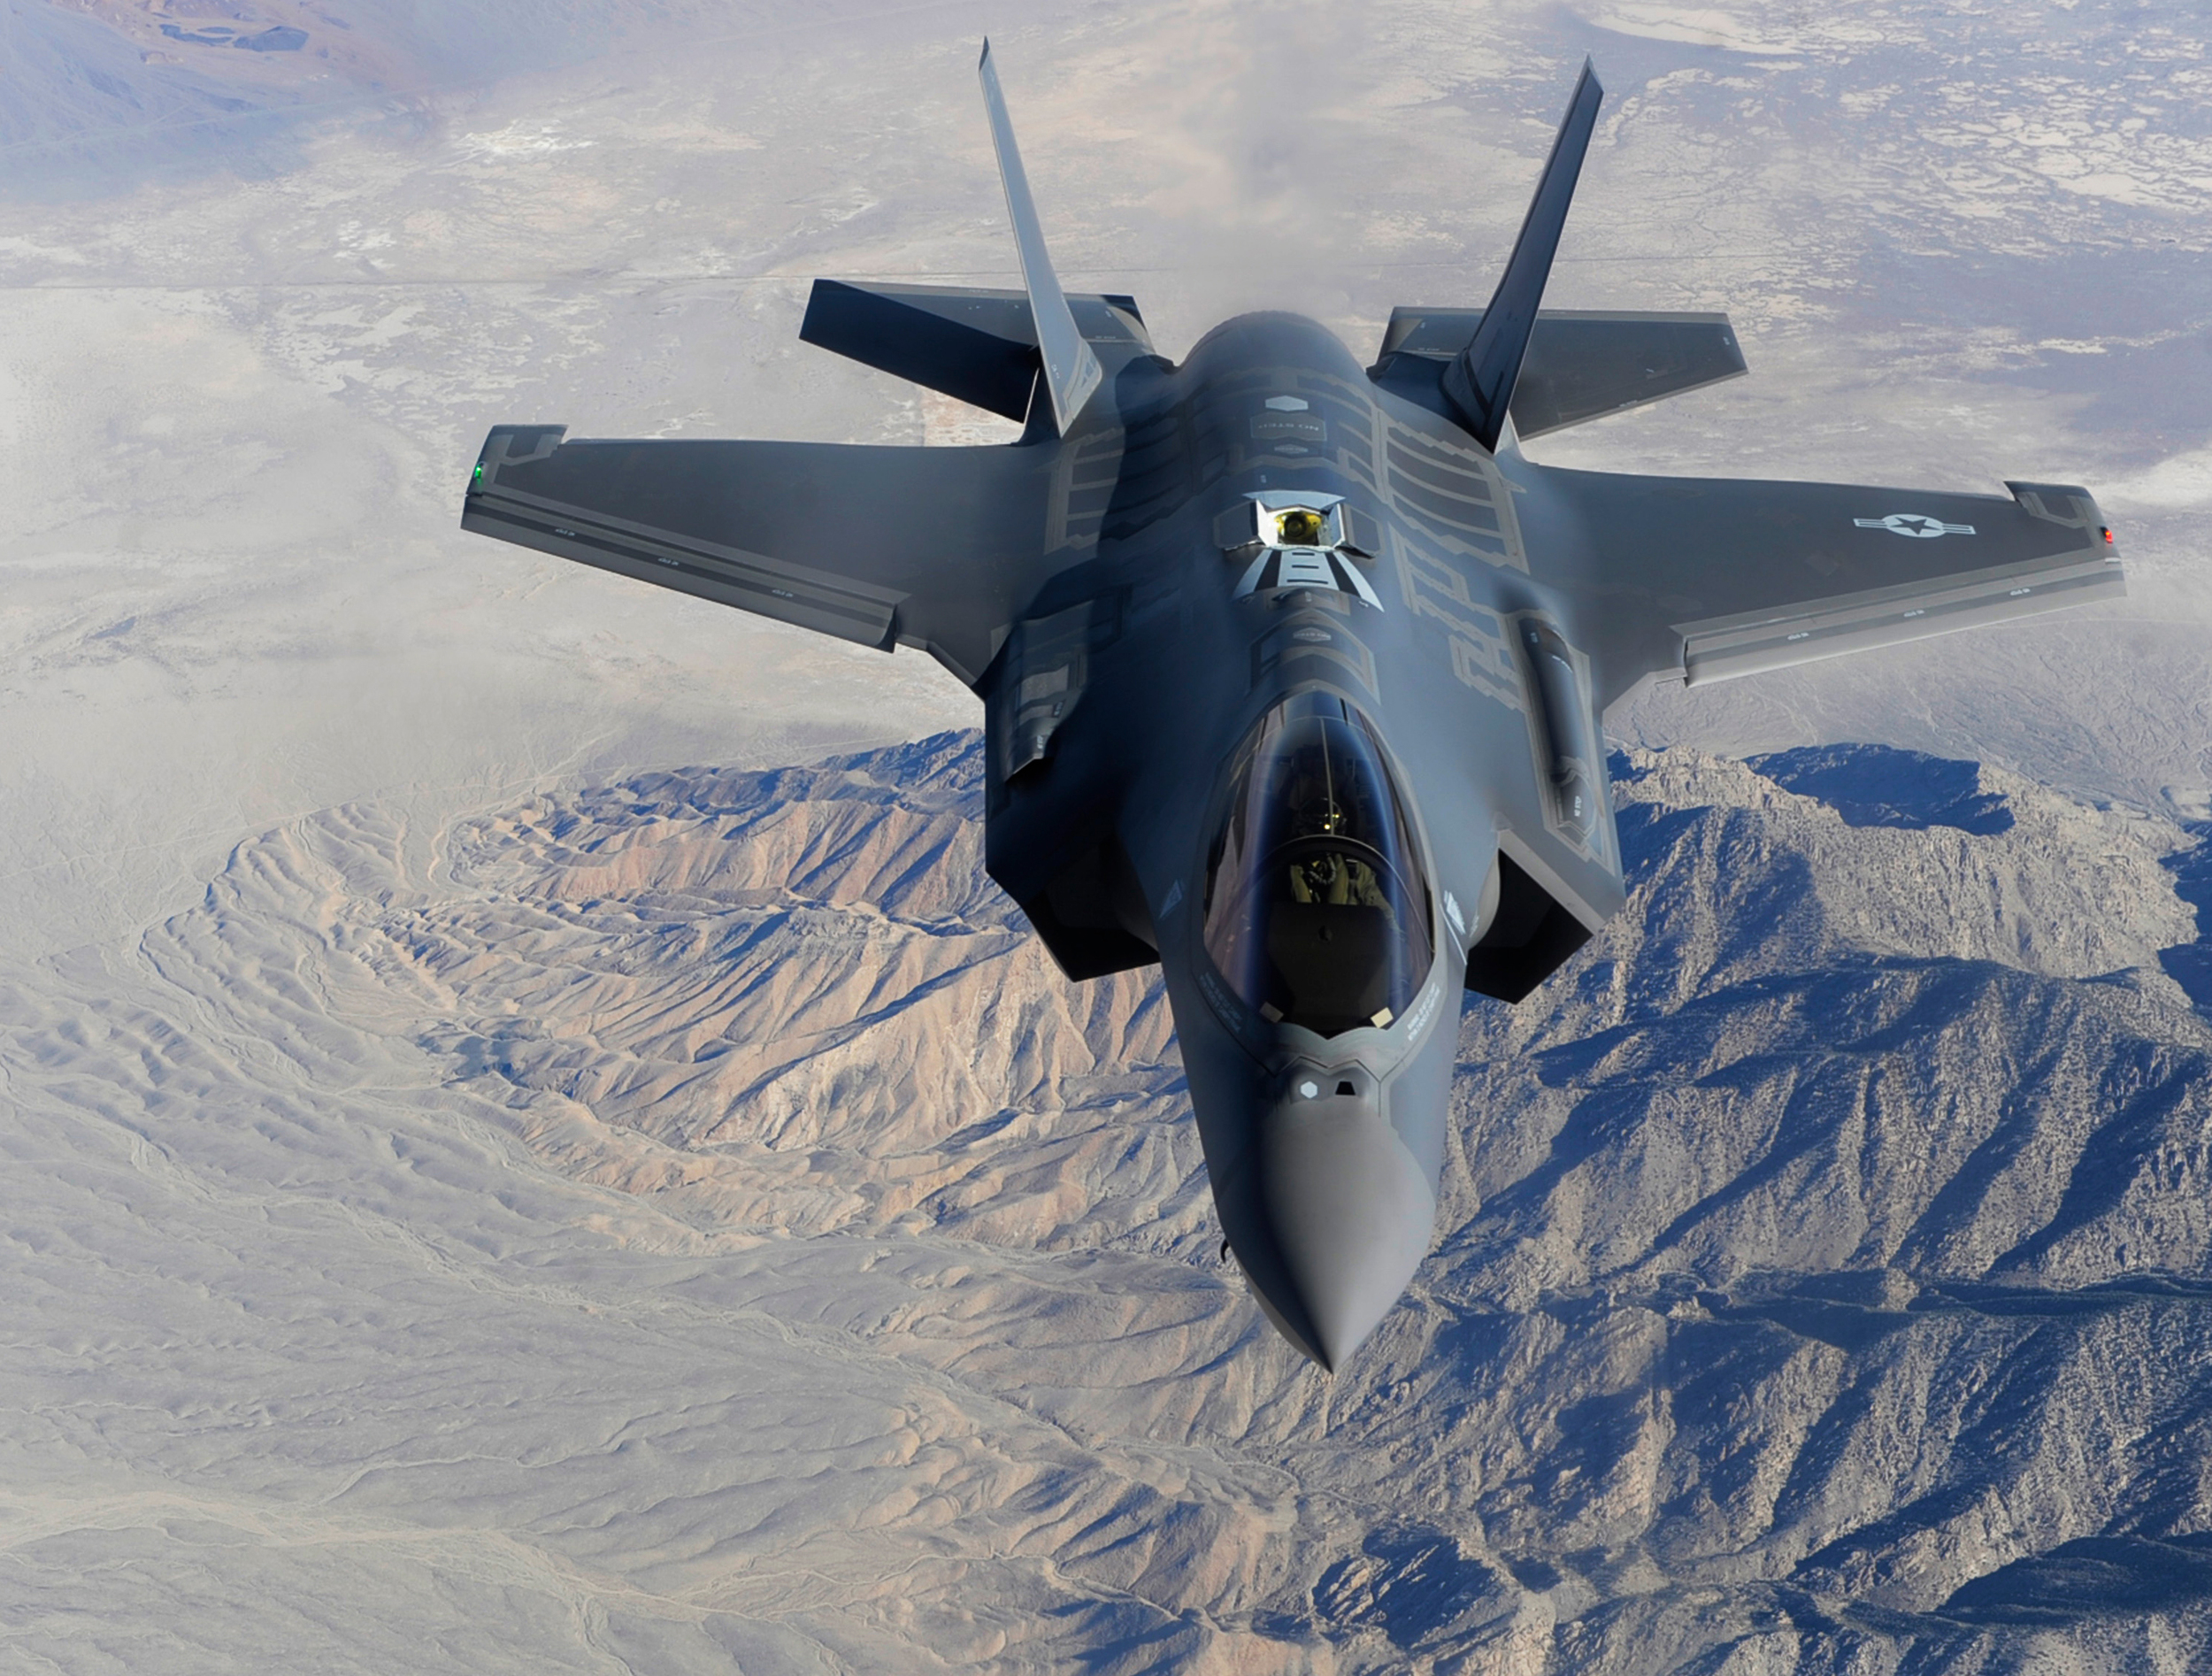 The face of modern warfare includes next generation fighter jets, such as Lockheed Martin's F-35 family of multirole, stealth aircraft. Available in A, B and C models, each with its own set of capabilities, the F-35 is designed to perform ground attacks, aerial reconnaissance and air defence missions. Pictured: the F-35C, a carrier-based Catapult Assisted Take-Off But Arrested Recovery (CAFTOBAR) model. (U.S. Air Force)